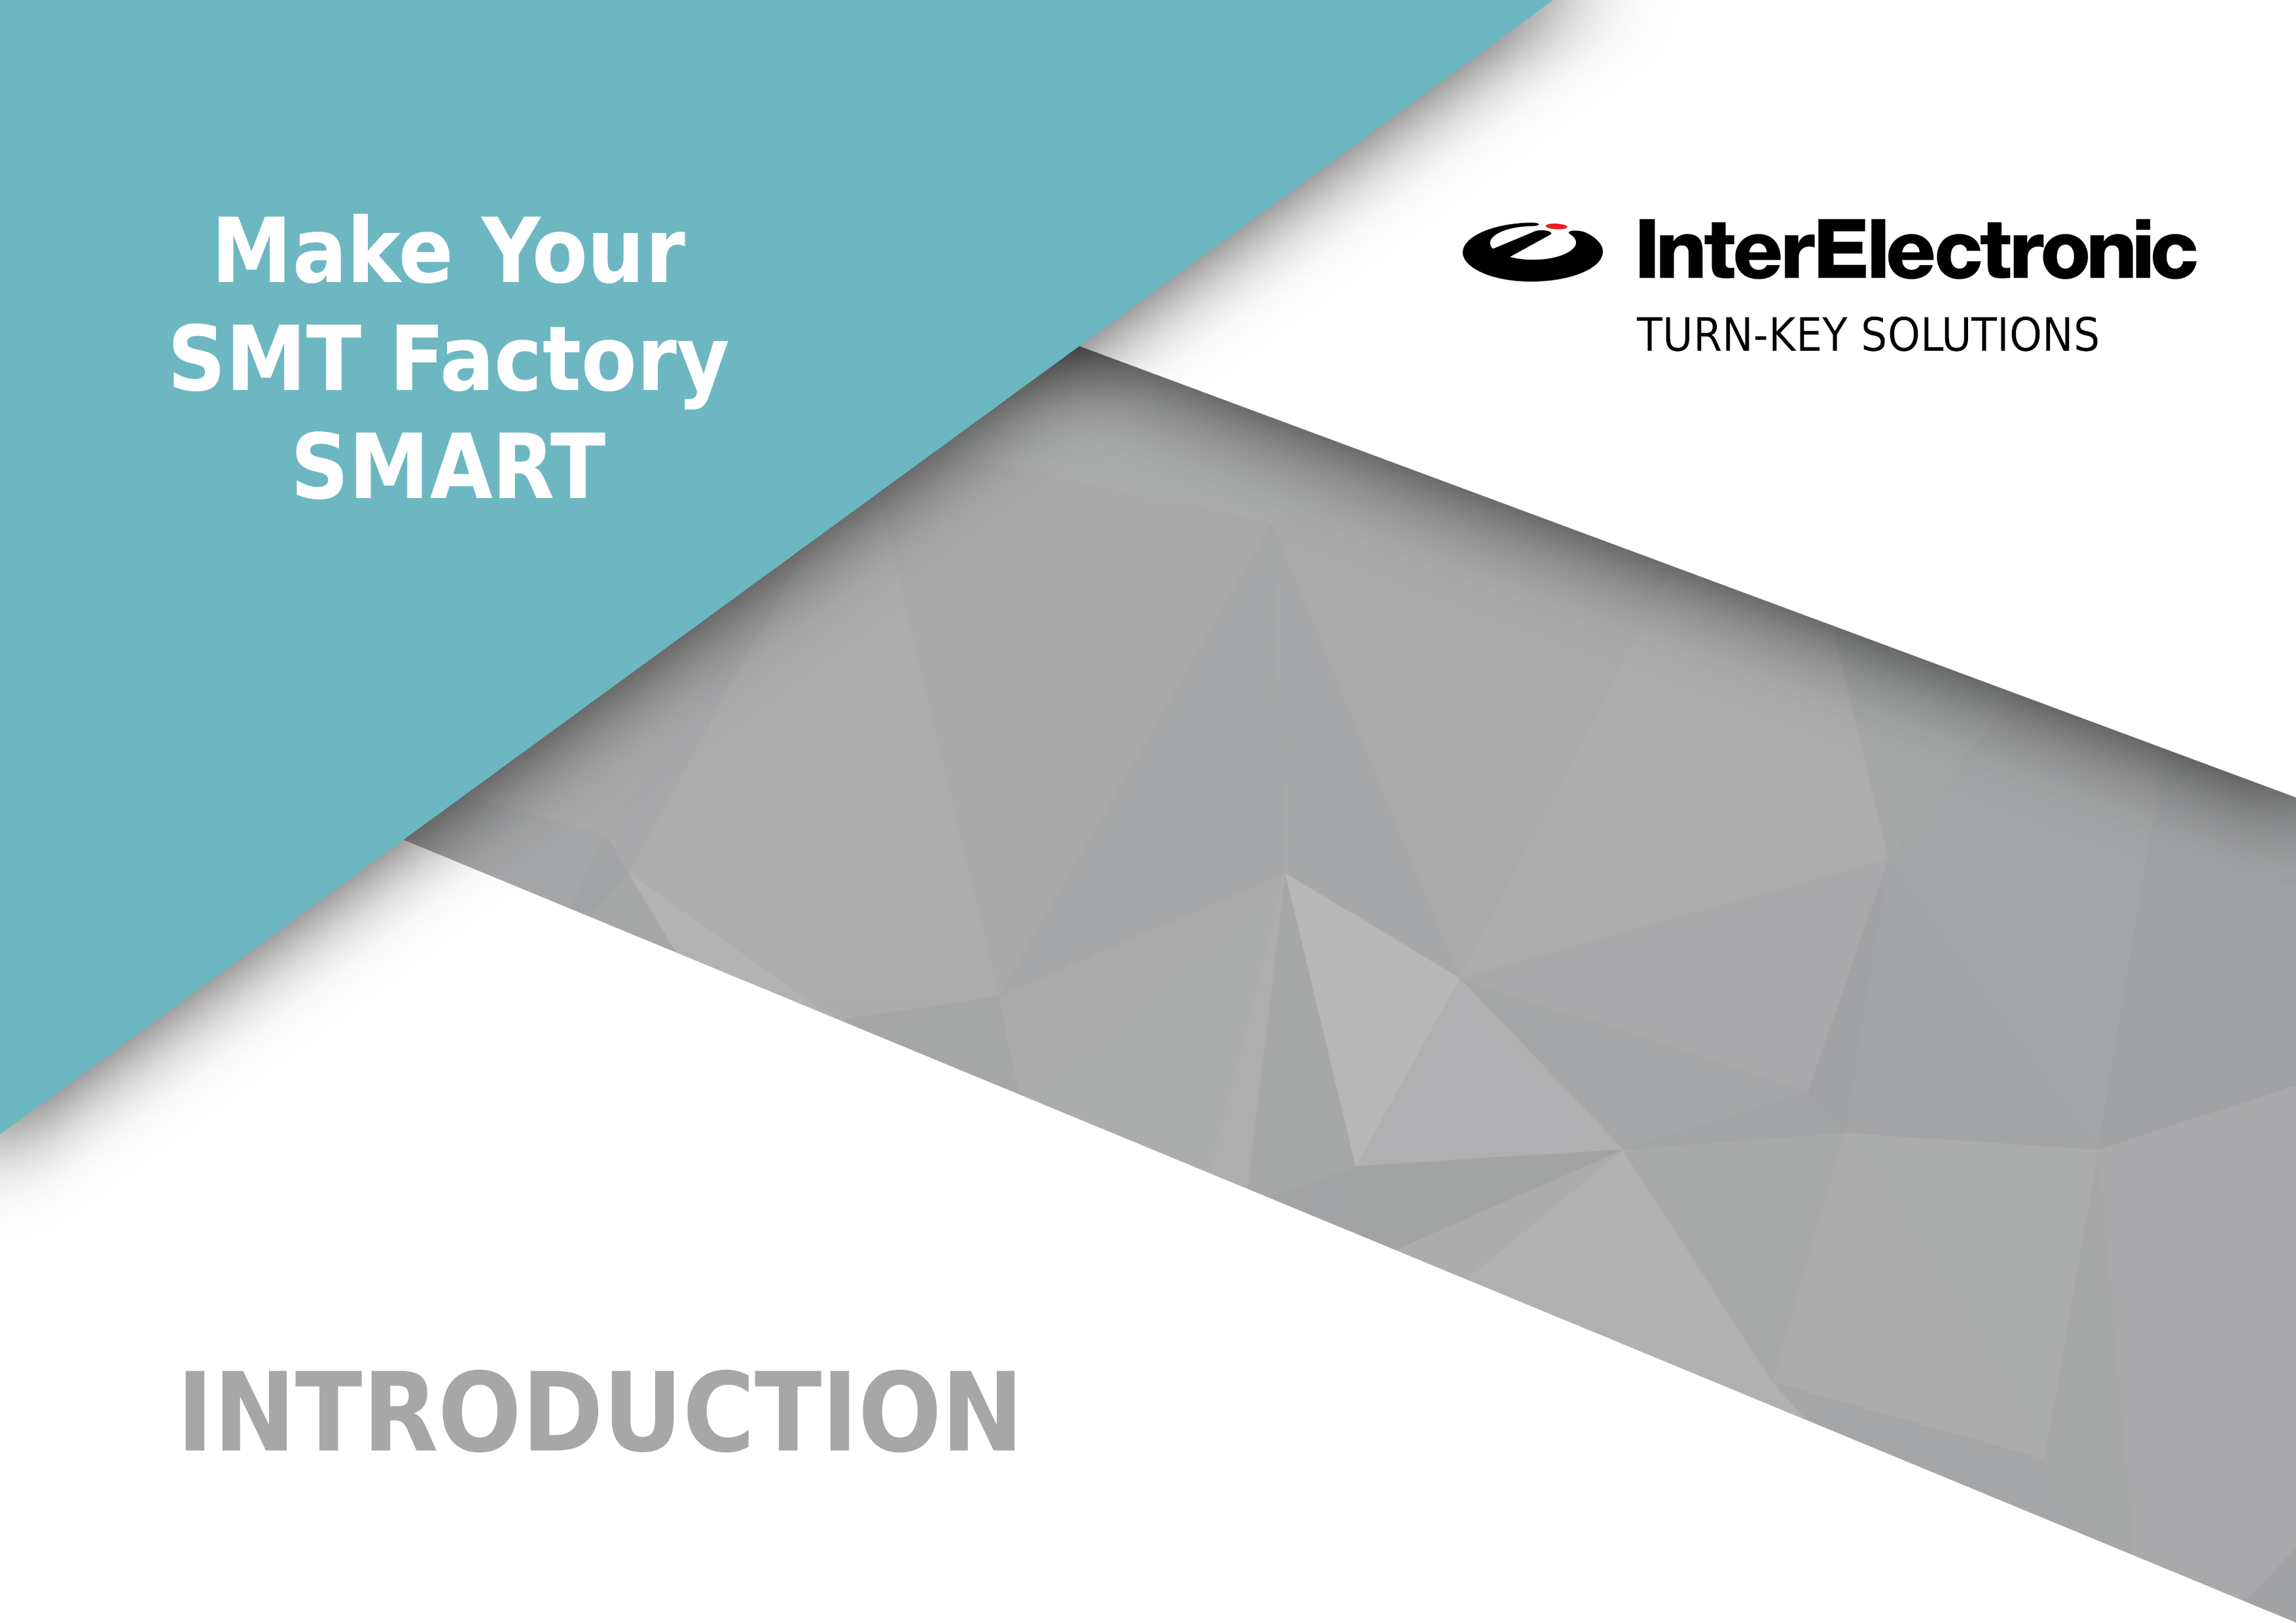 Download: Introduction of InterElectronic